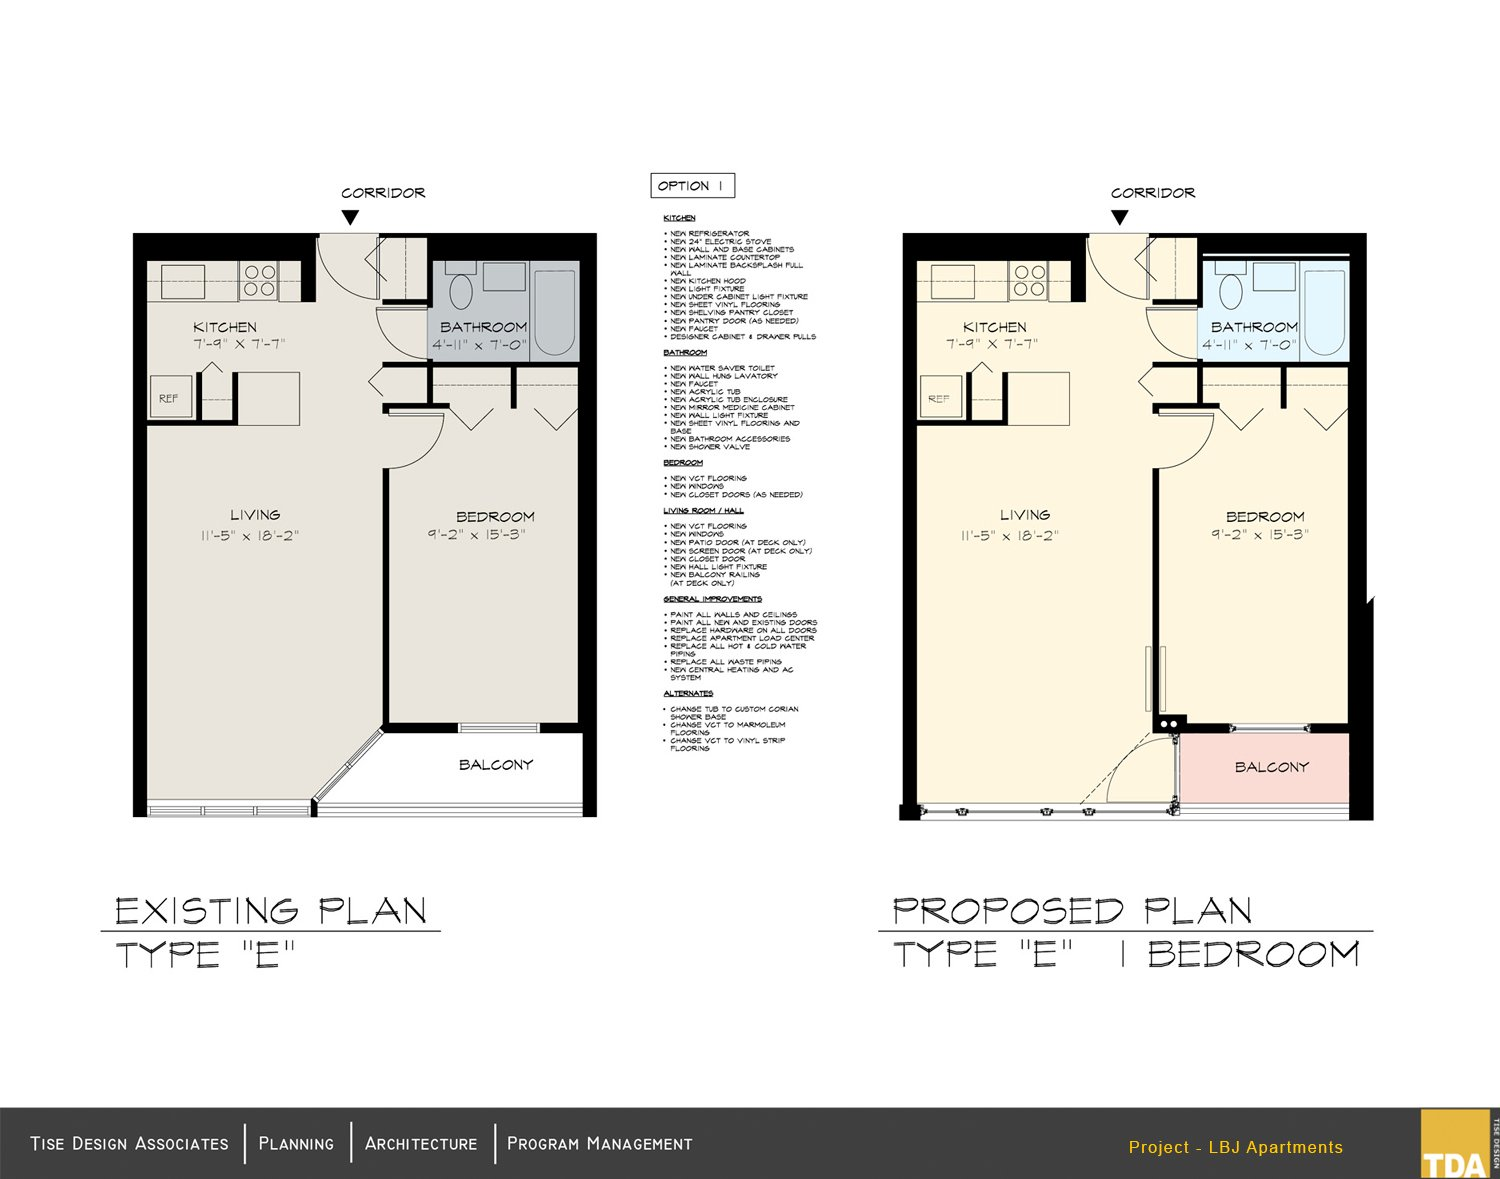 Existing Plan - Type E and Proposed Plan - Type E 1 Bedroom Tise Design Associates}